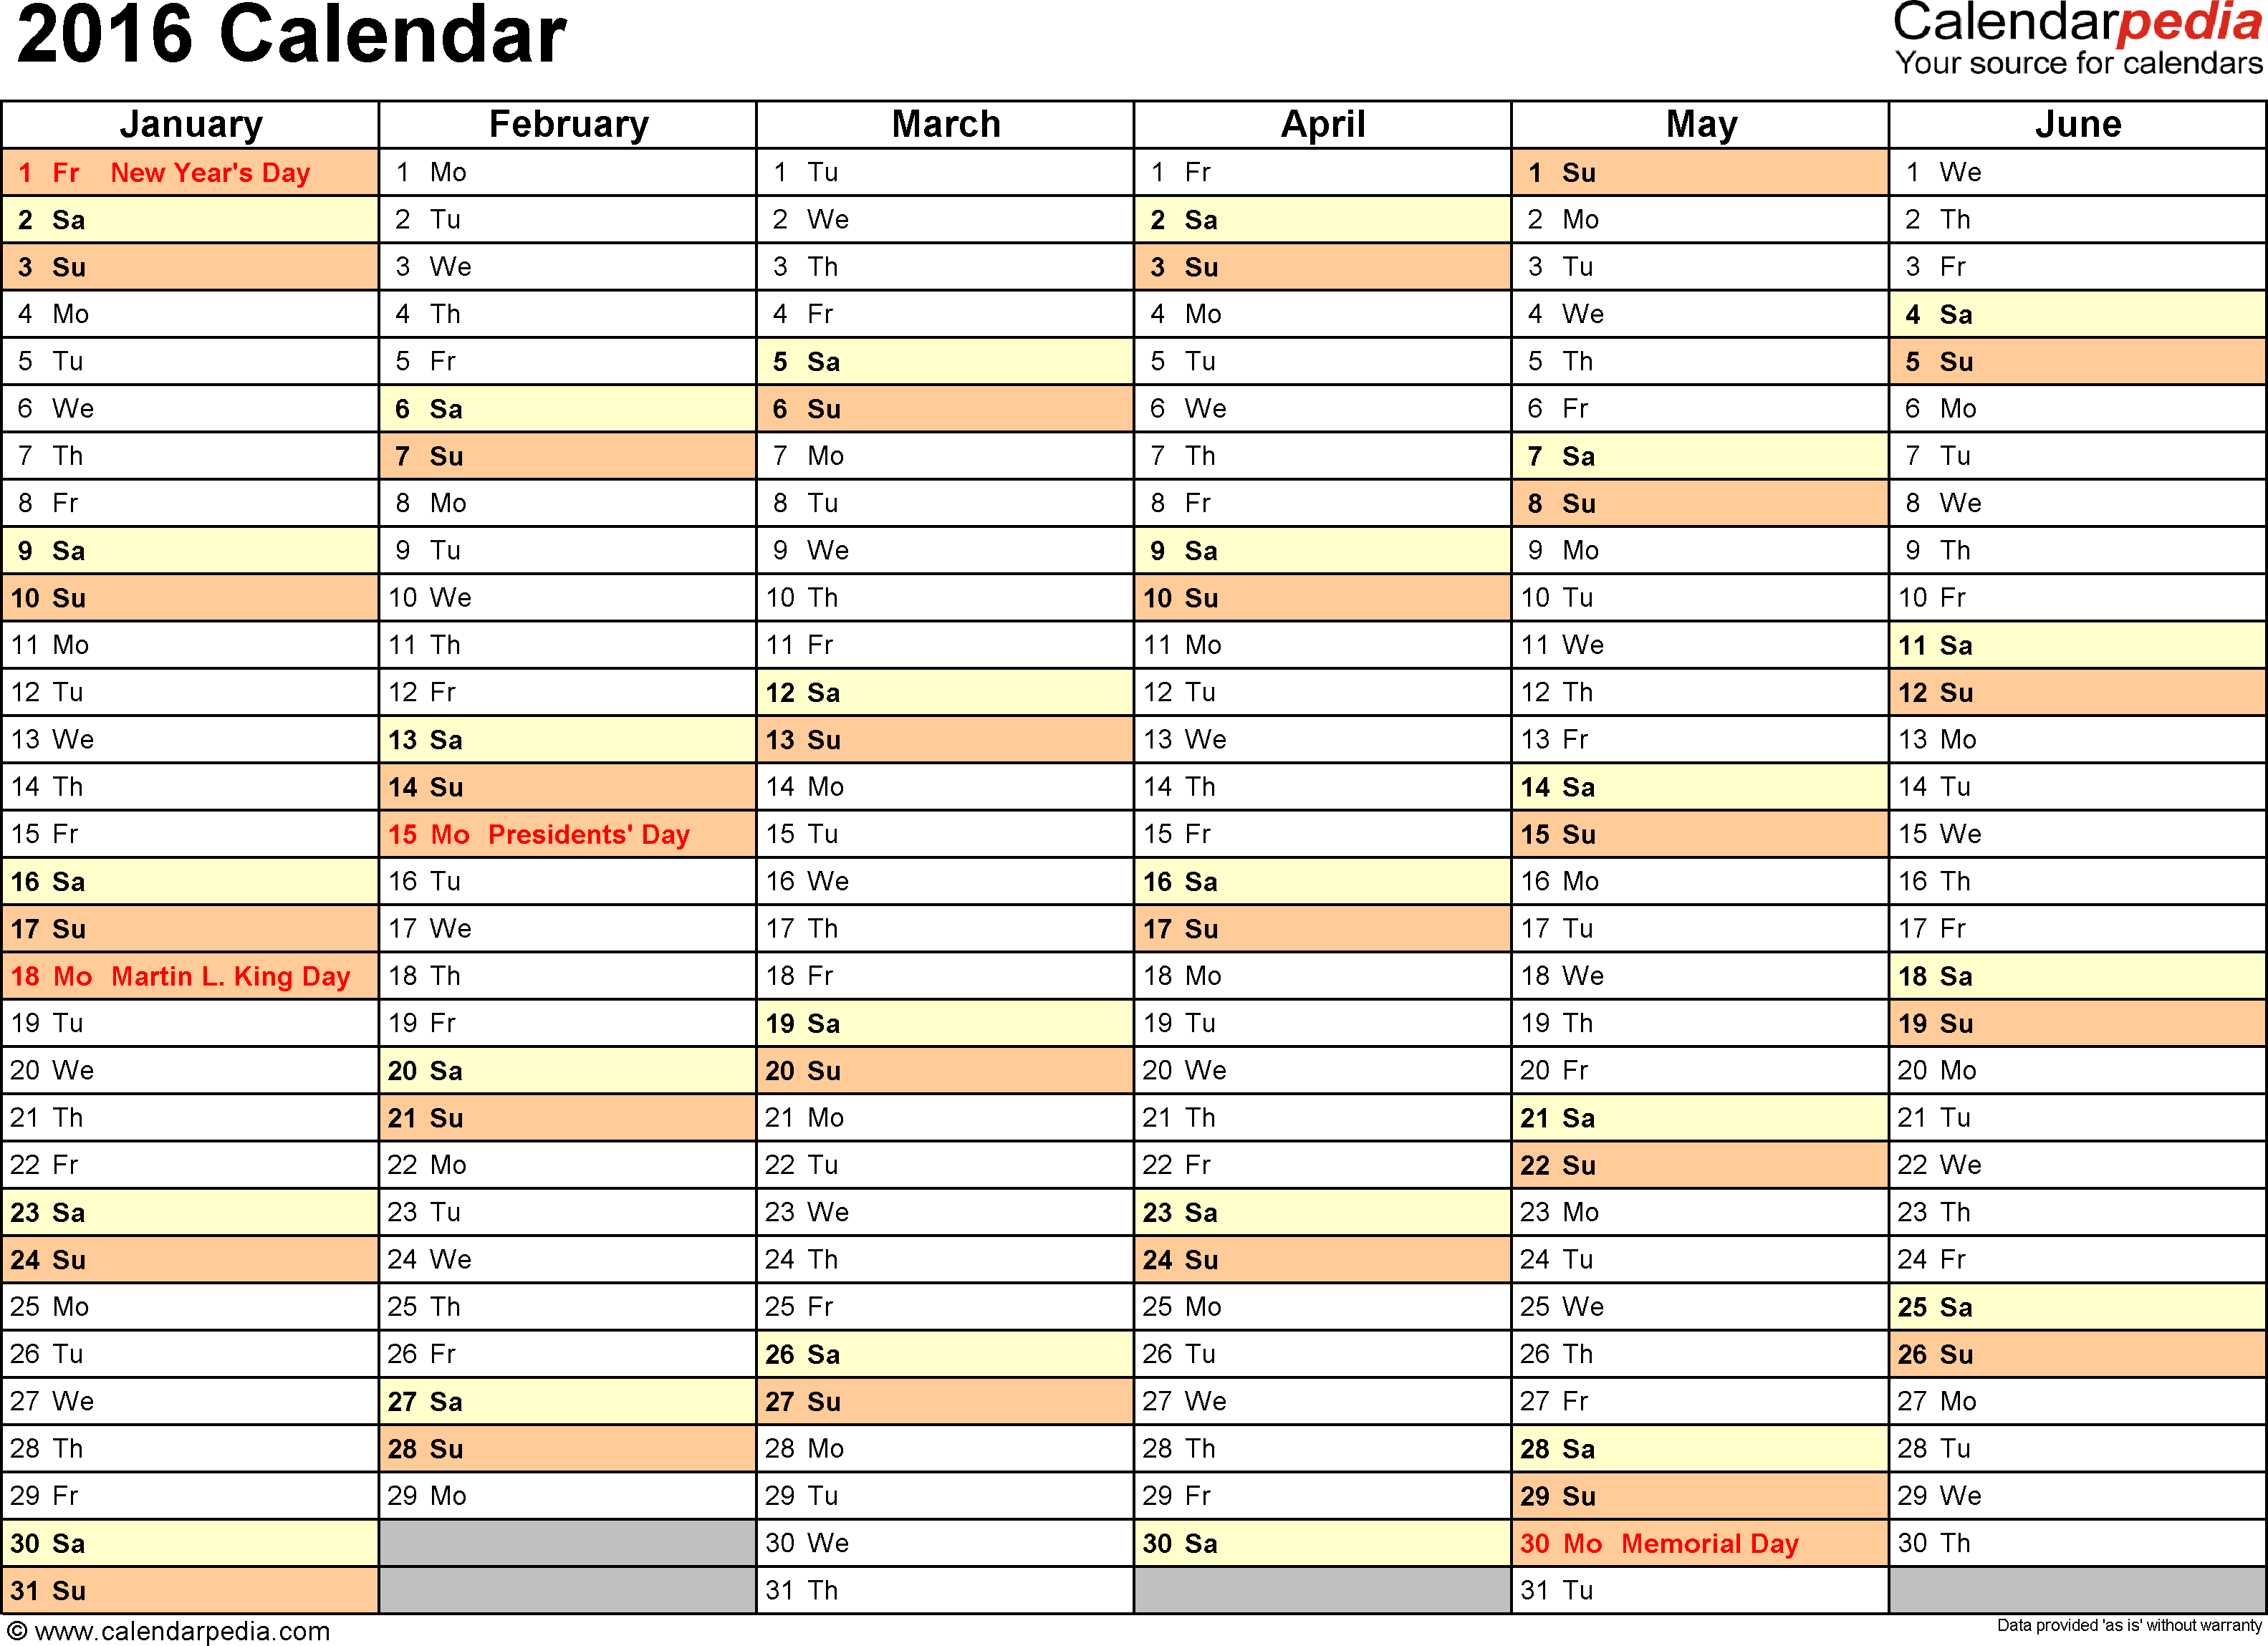 Ediblewildsus  Wonderful  Calendar  Download  Free Printable Excel Templates Xls With Exciting Template   Calendar For Excel Months Horizontally  Pages Landscape Orientation With Attractive Excel  Create Chart Also Looping In Excel In Addition Microsoft Excel Multiply And Excel Date Conditional Formatting As Well As How To Get Day Of The Week In Excel Additionally Reports From Excel From Calendarpediacom With Ediblewildsus  Exciting  Calendar  Download  Free Printable Excel Templates Xls With Attractive Template   Calendar For Excel Months Horizontally  Pages Landscape Orientation And Wonderful Excel  Create Chart Also Looping In Excel In Addition Microsoft Excel Multiply From Calendarpediacom